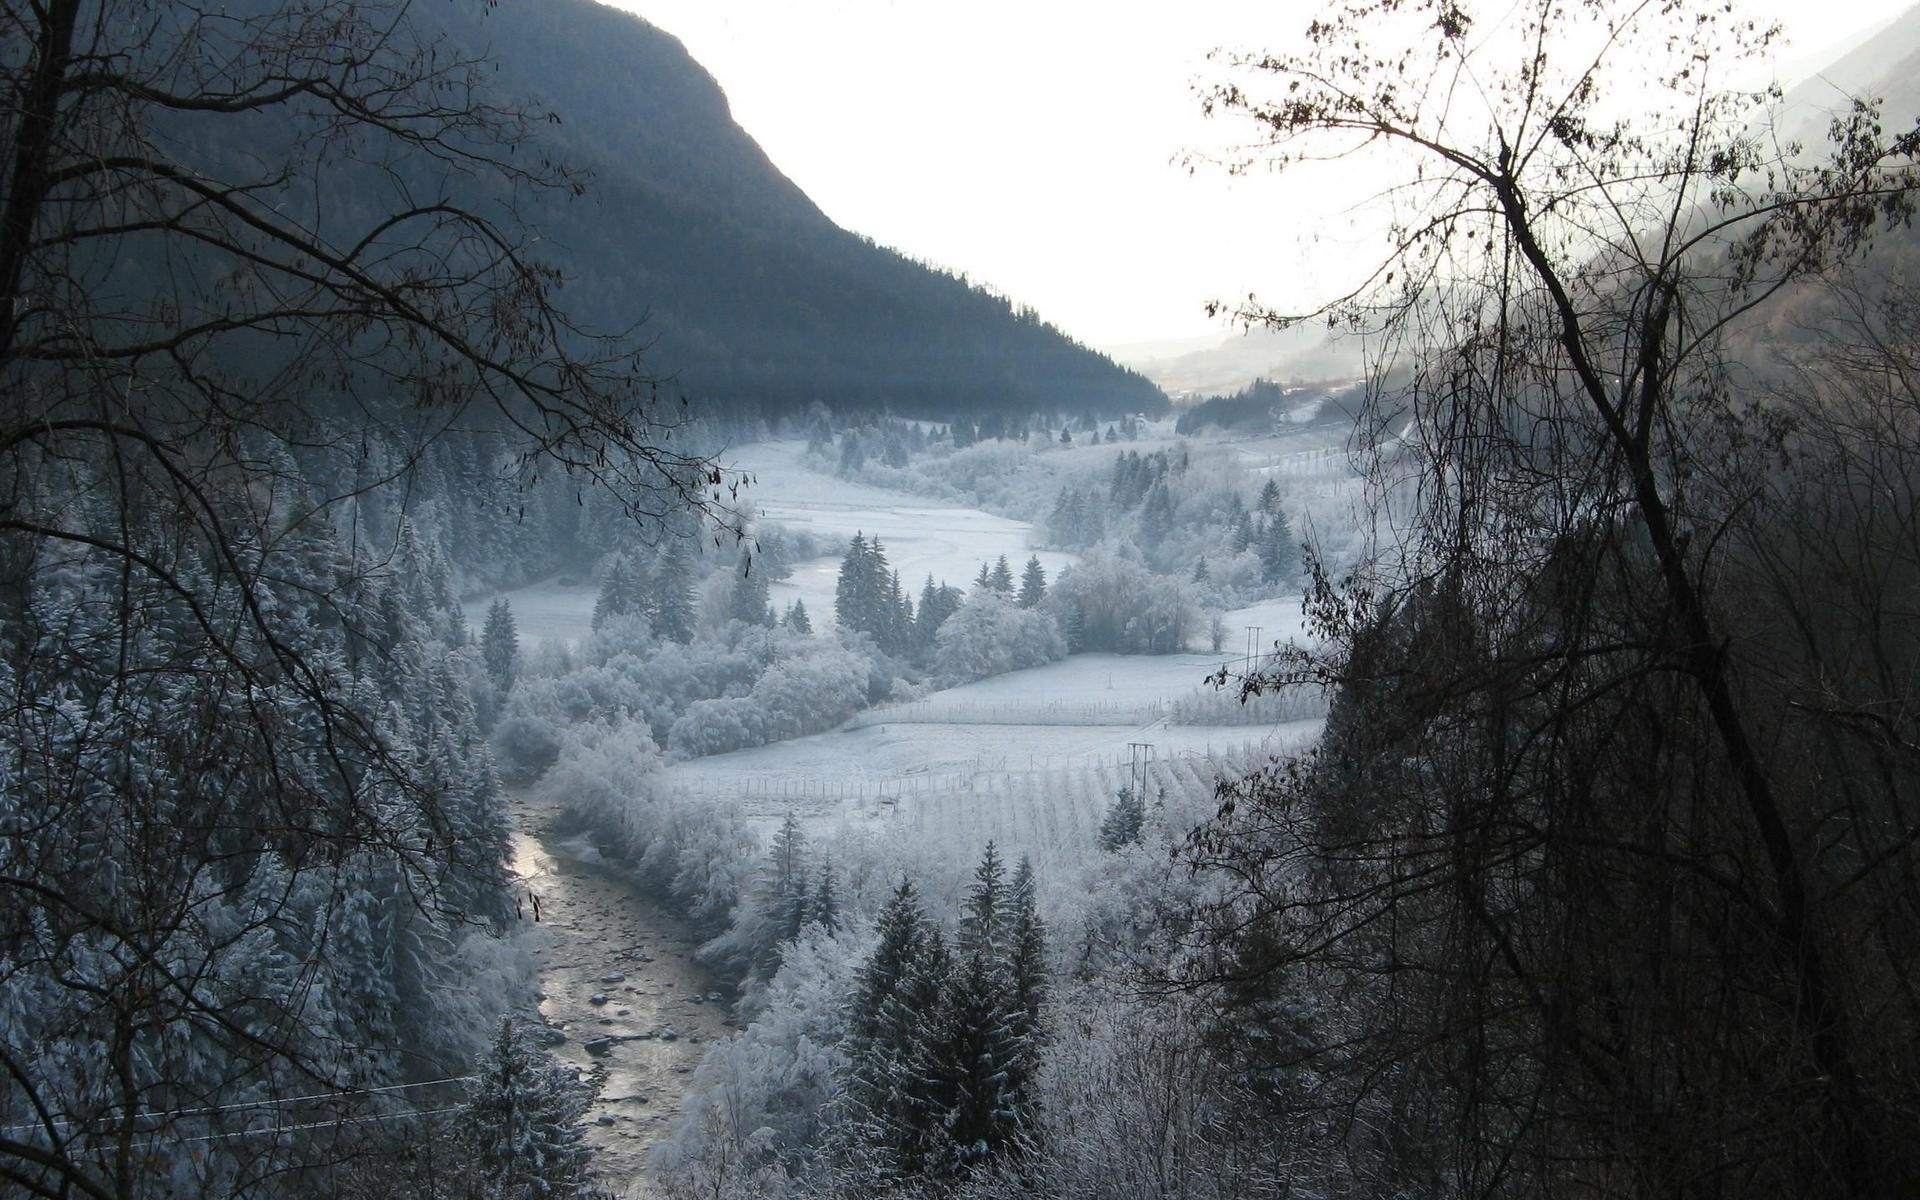 General 1920x1200 nature landscape winter river valley mountains snow forest field trees